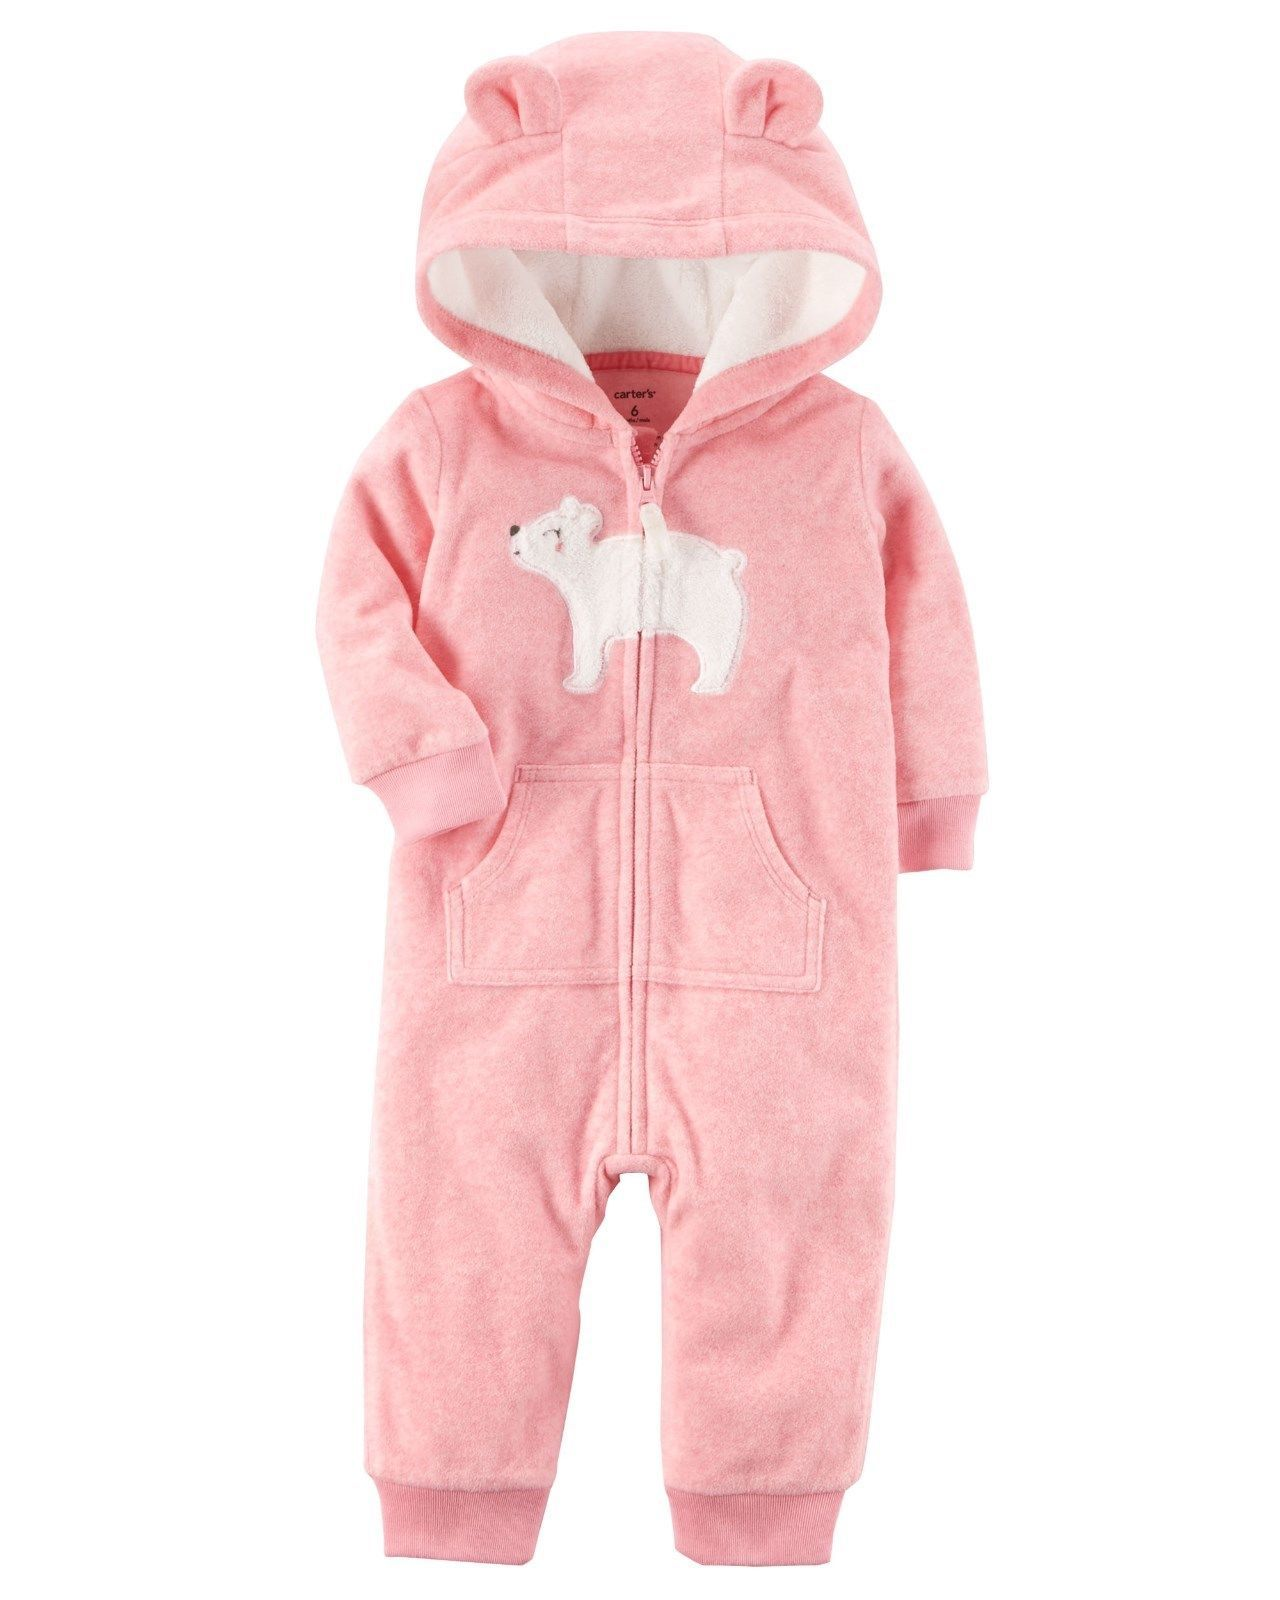 Baby Gap Size 6-9months Pink Hooded One Piece Bodysuit Romper Bear Winter Girl Clothing, Shoes & Accessories